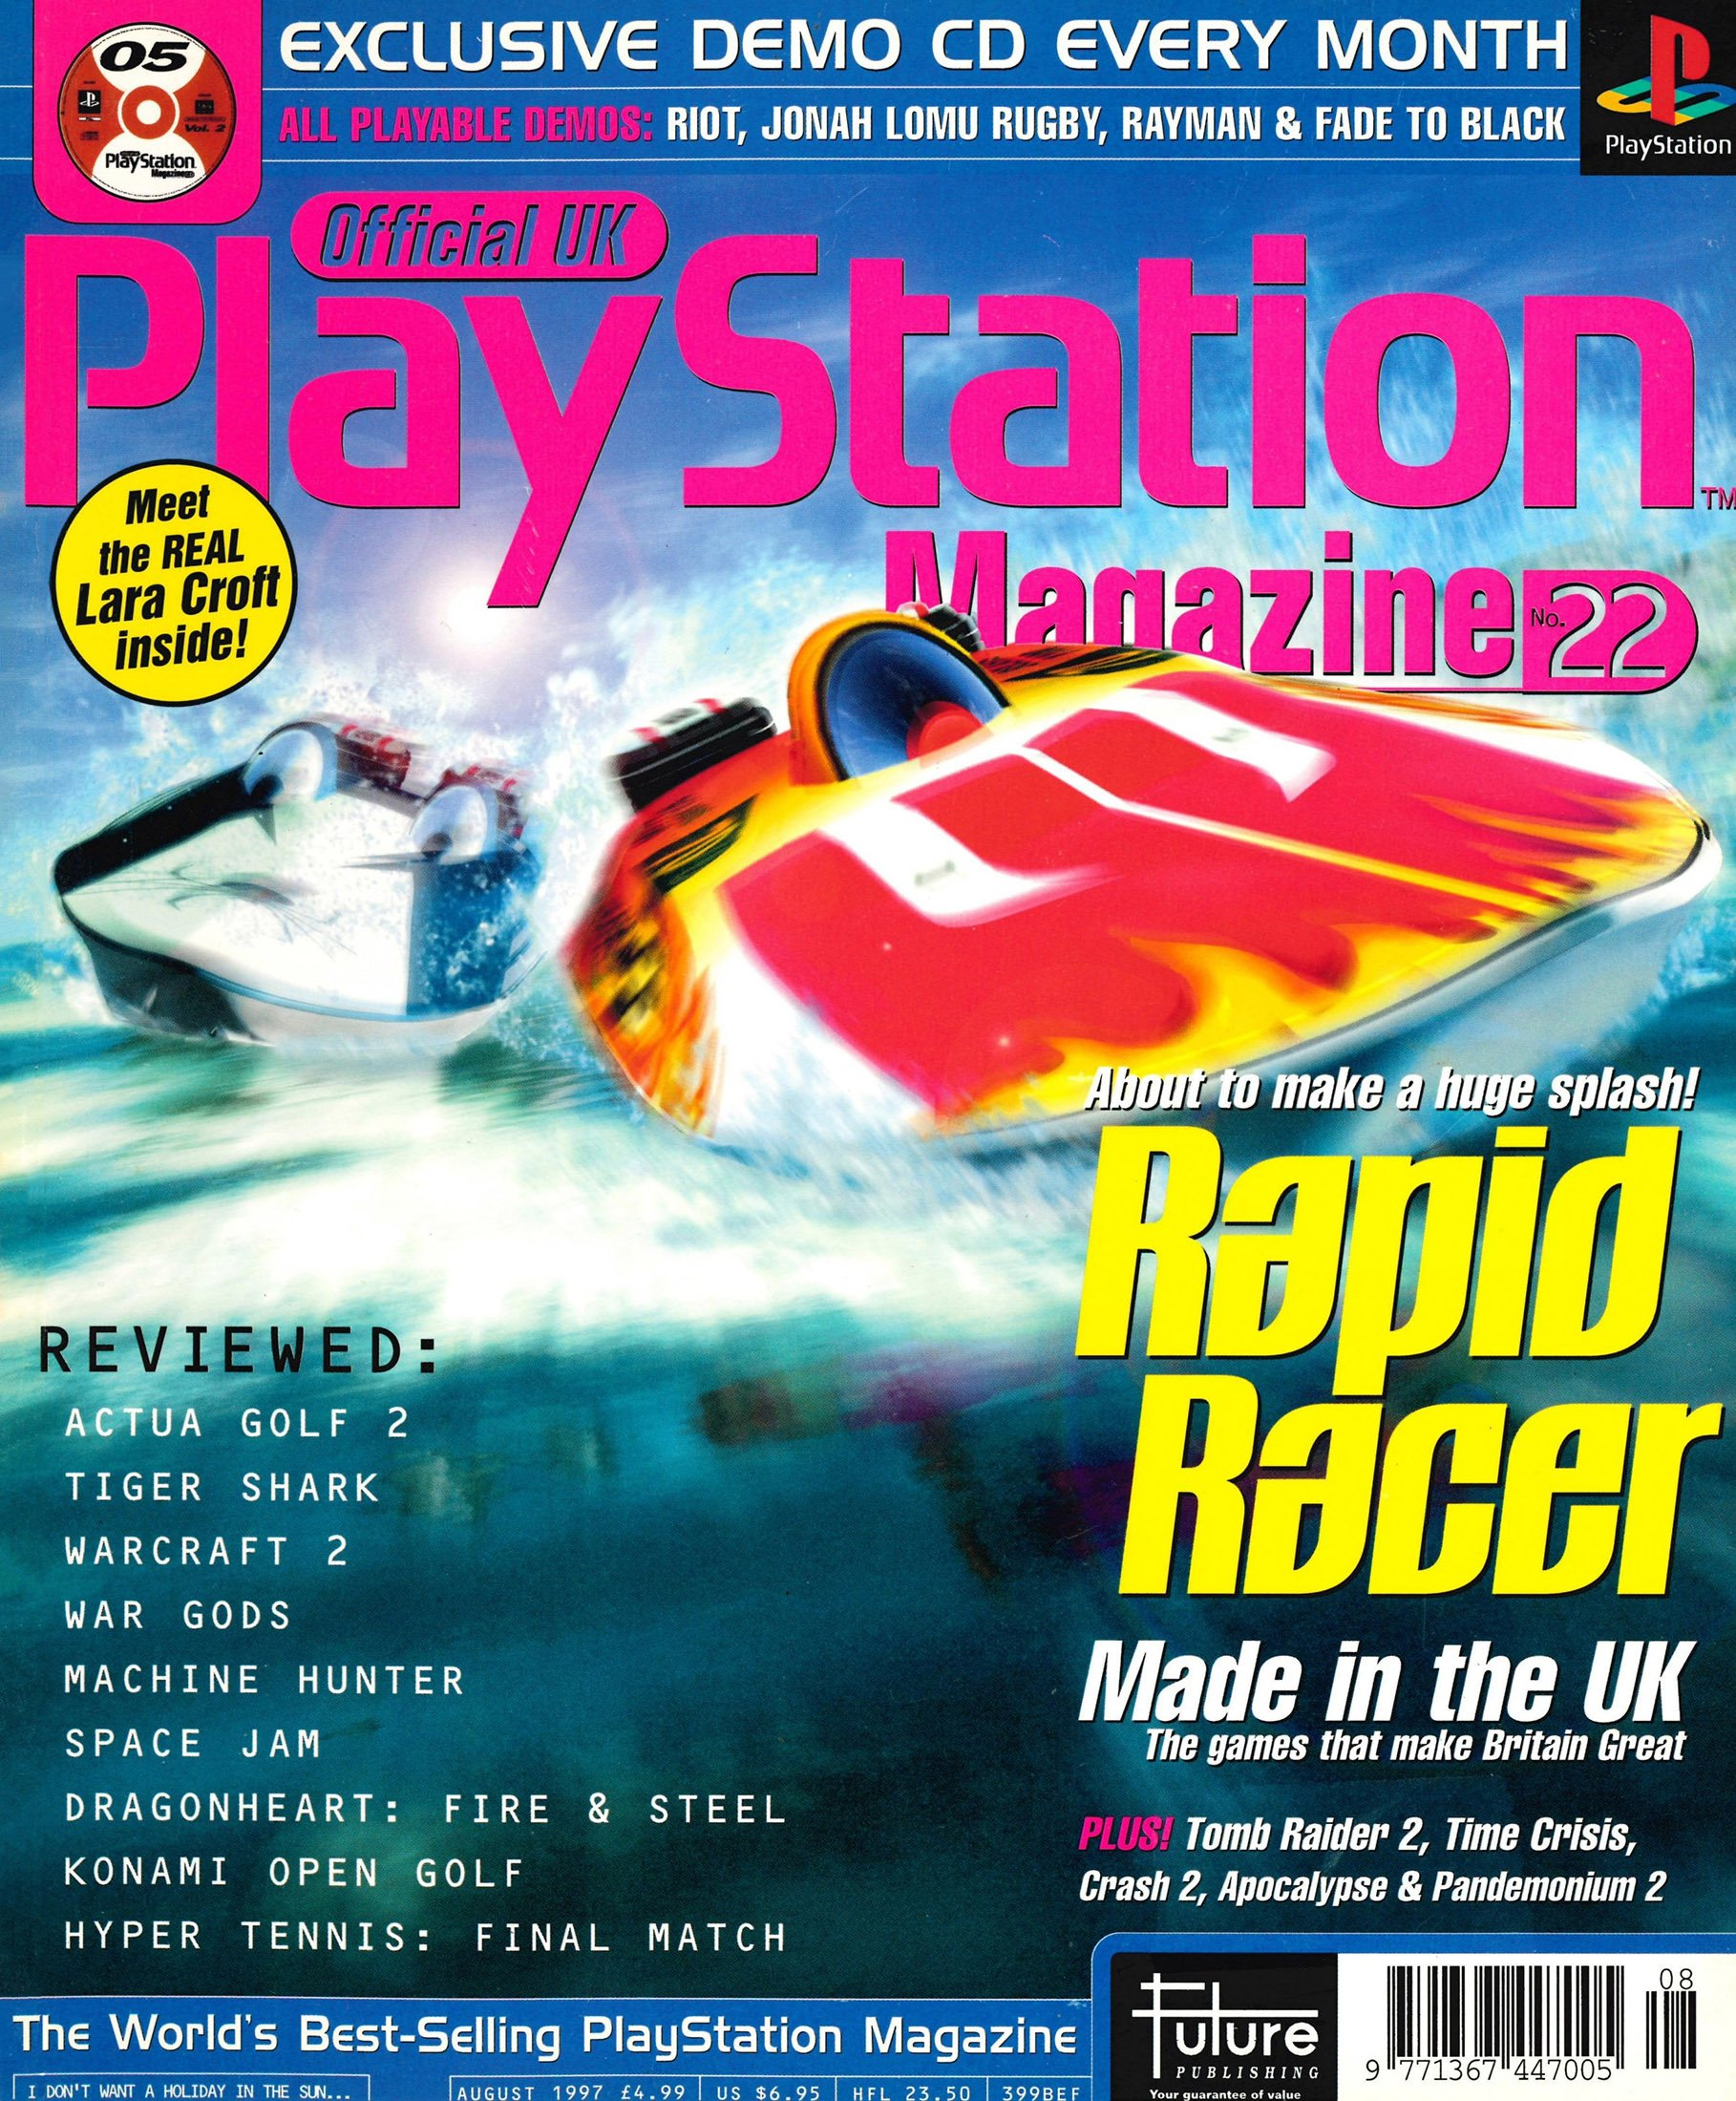 Official UK PlayStation Magazine Issue 022 (August 1997)